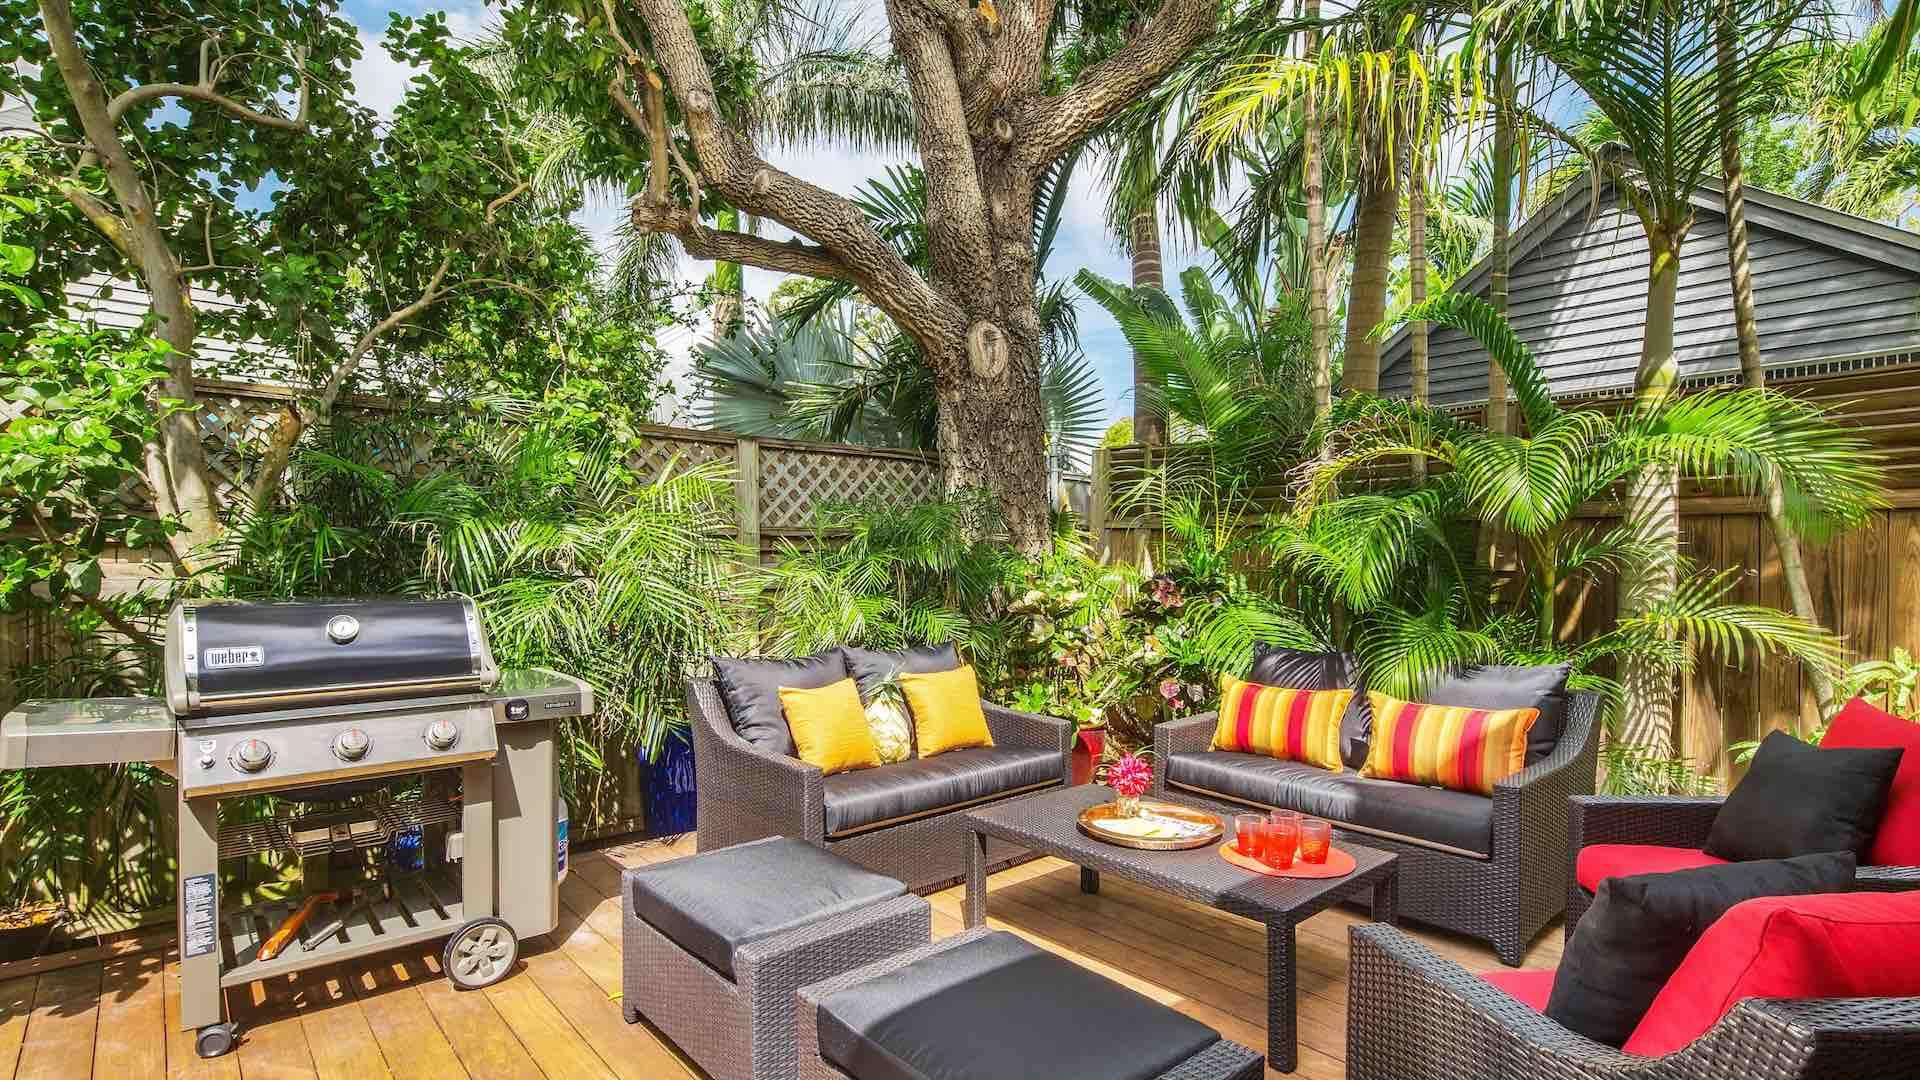 Lush landscaping surrounds the back yard area and makes it feel even more private...